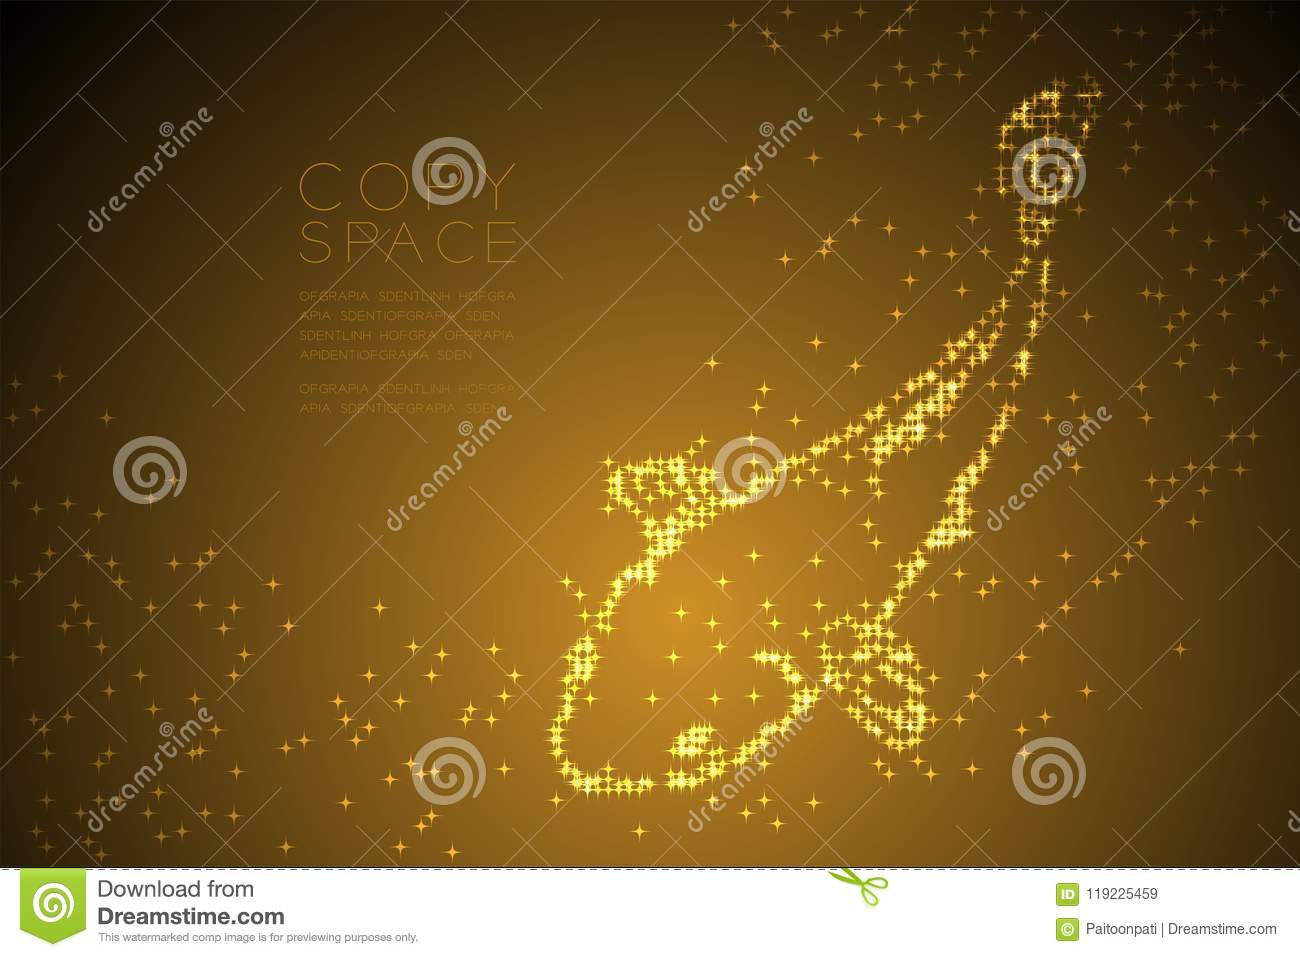 hight resolution of abstract shiny star pattern carp or koi fish shape aquatic and marine life concept design